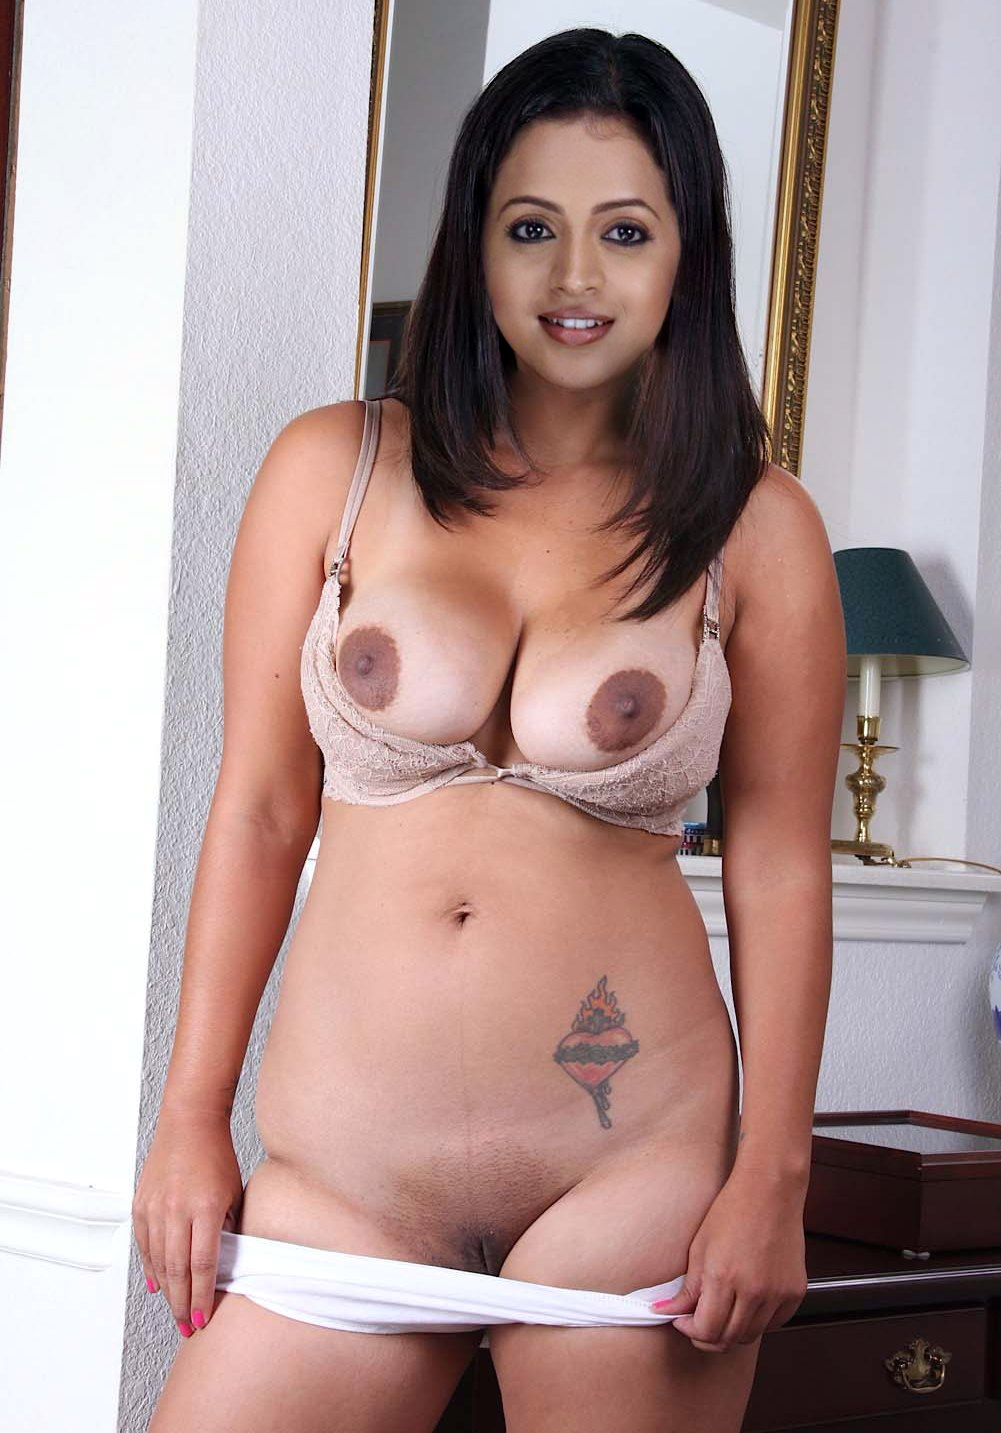 Busty latina milf nude, model nude young